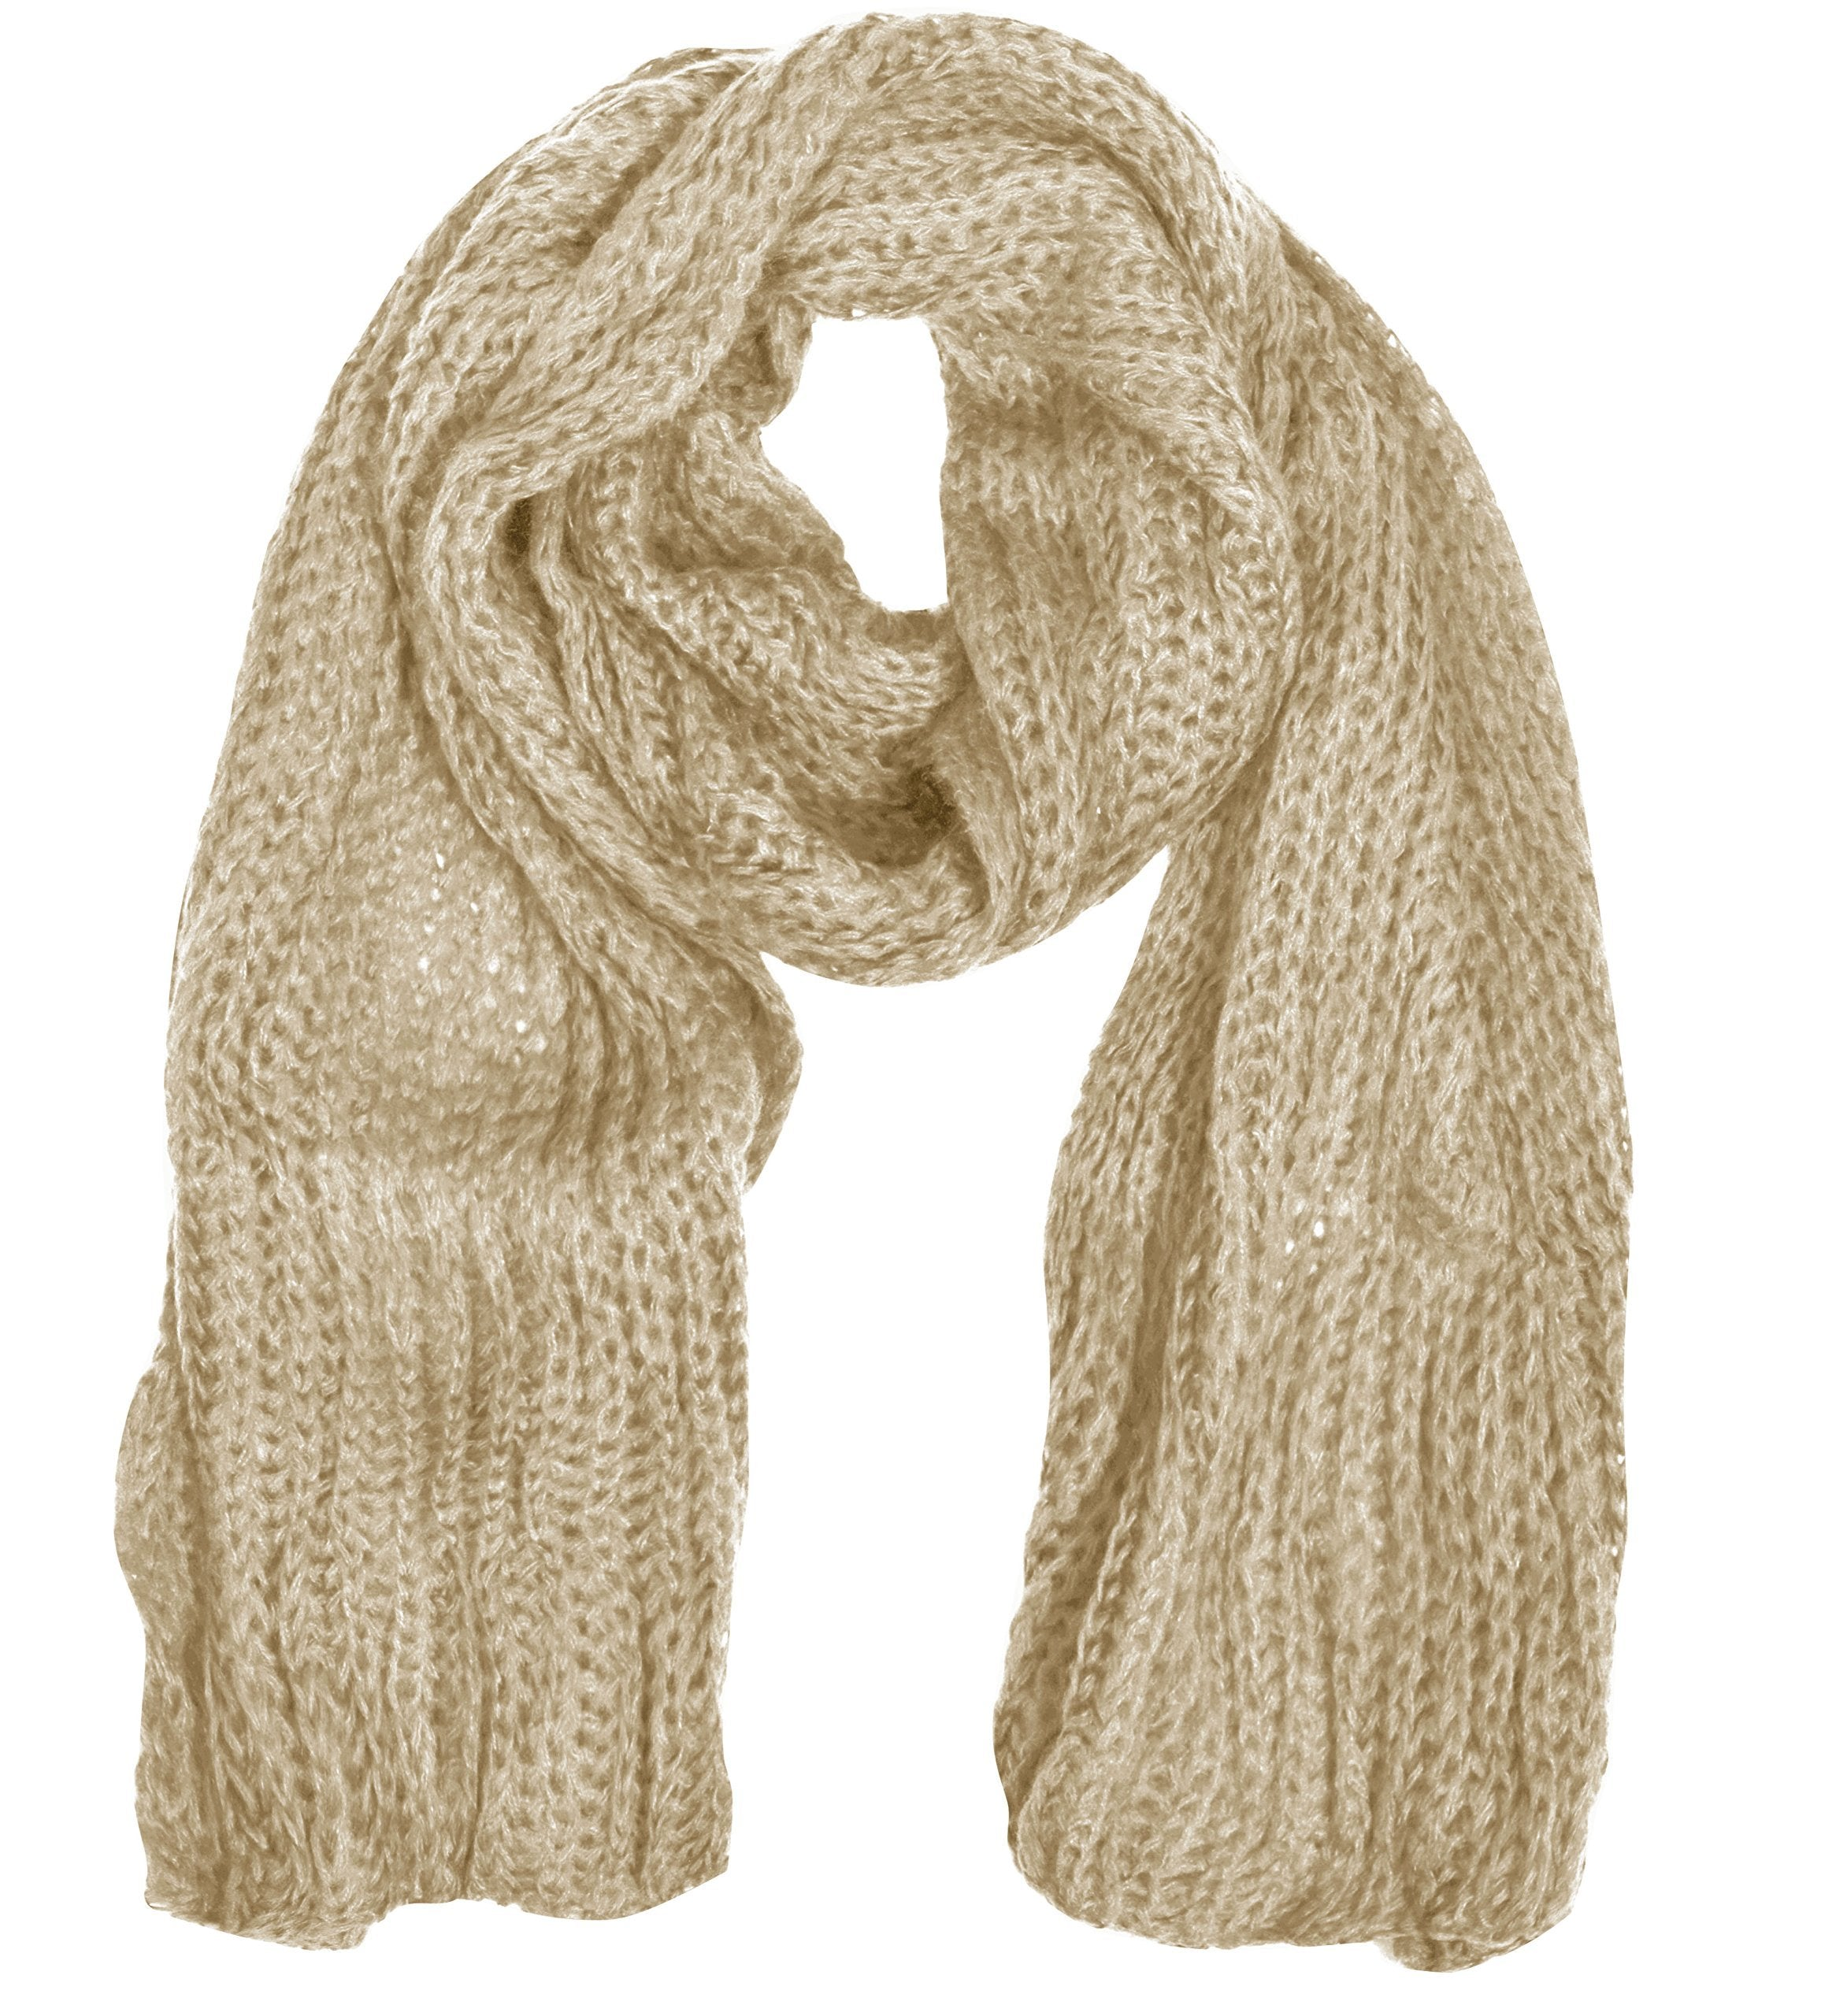 Warm and Cozy Unisex Chunky Hand Knit Long Scarf